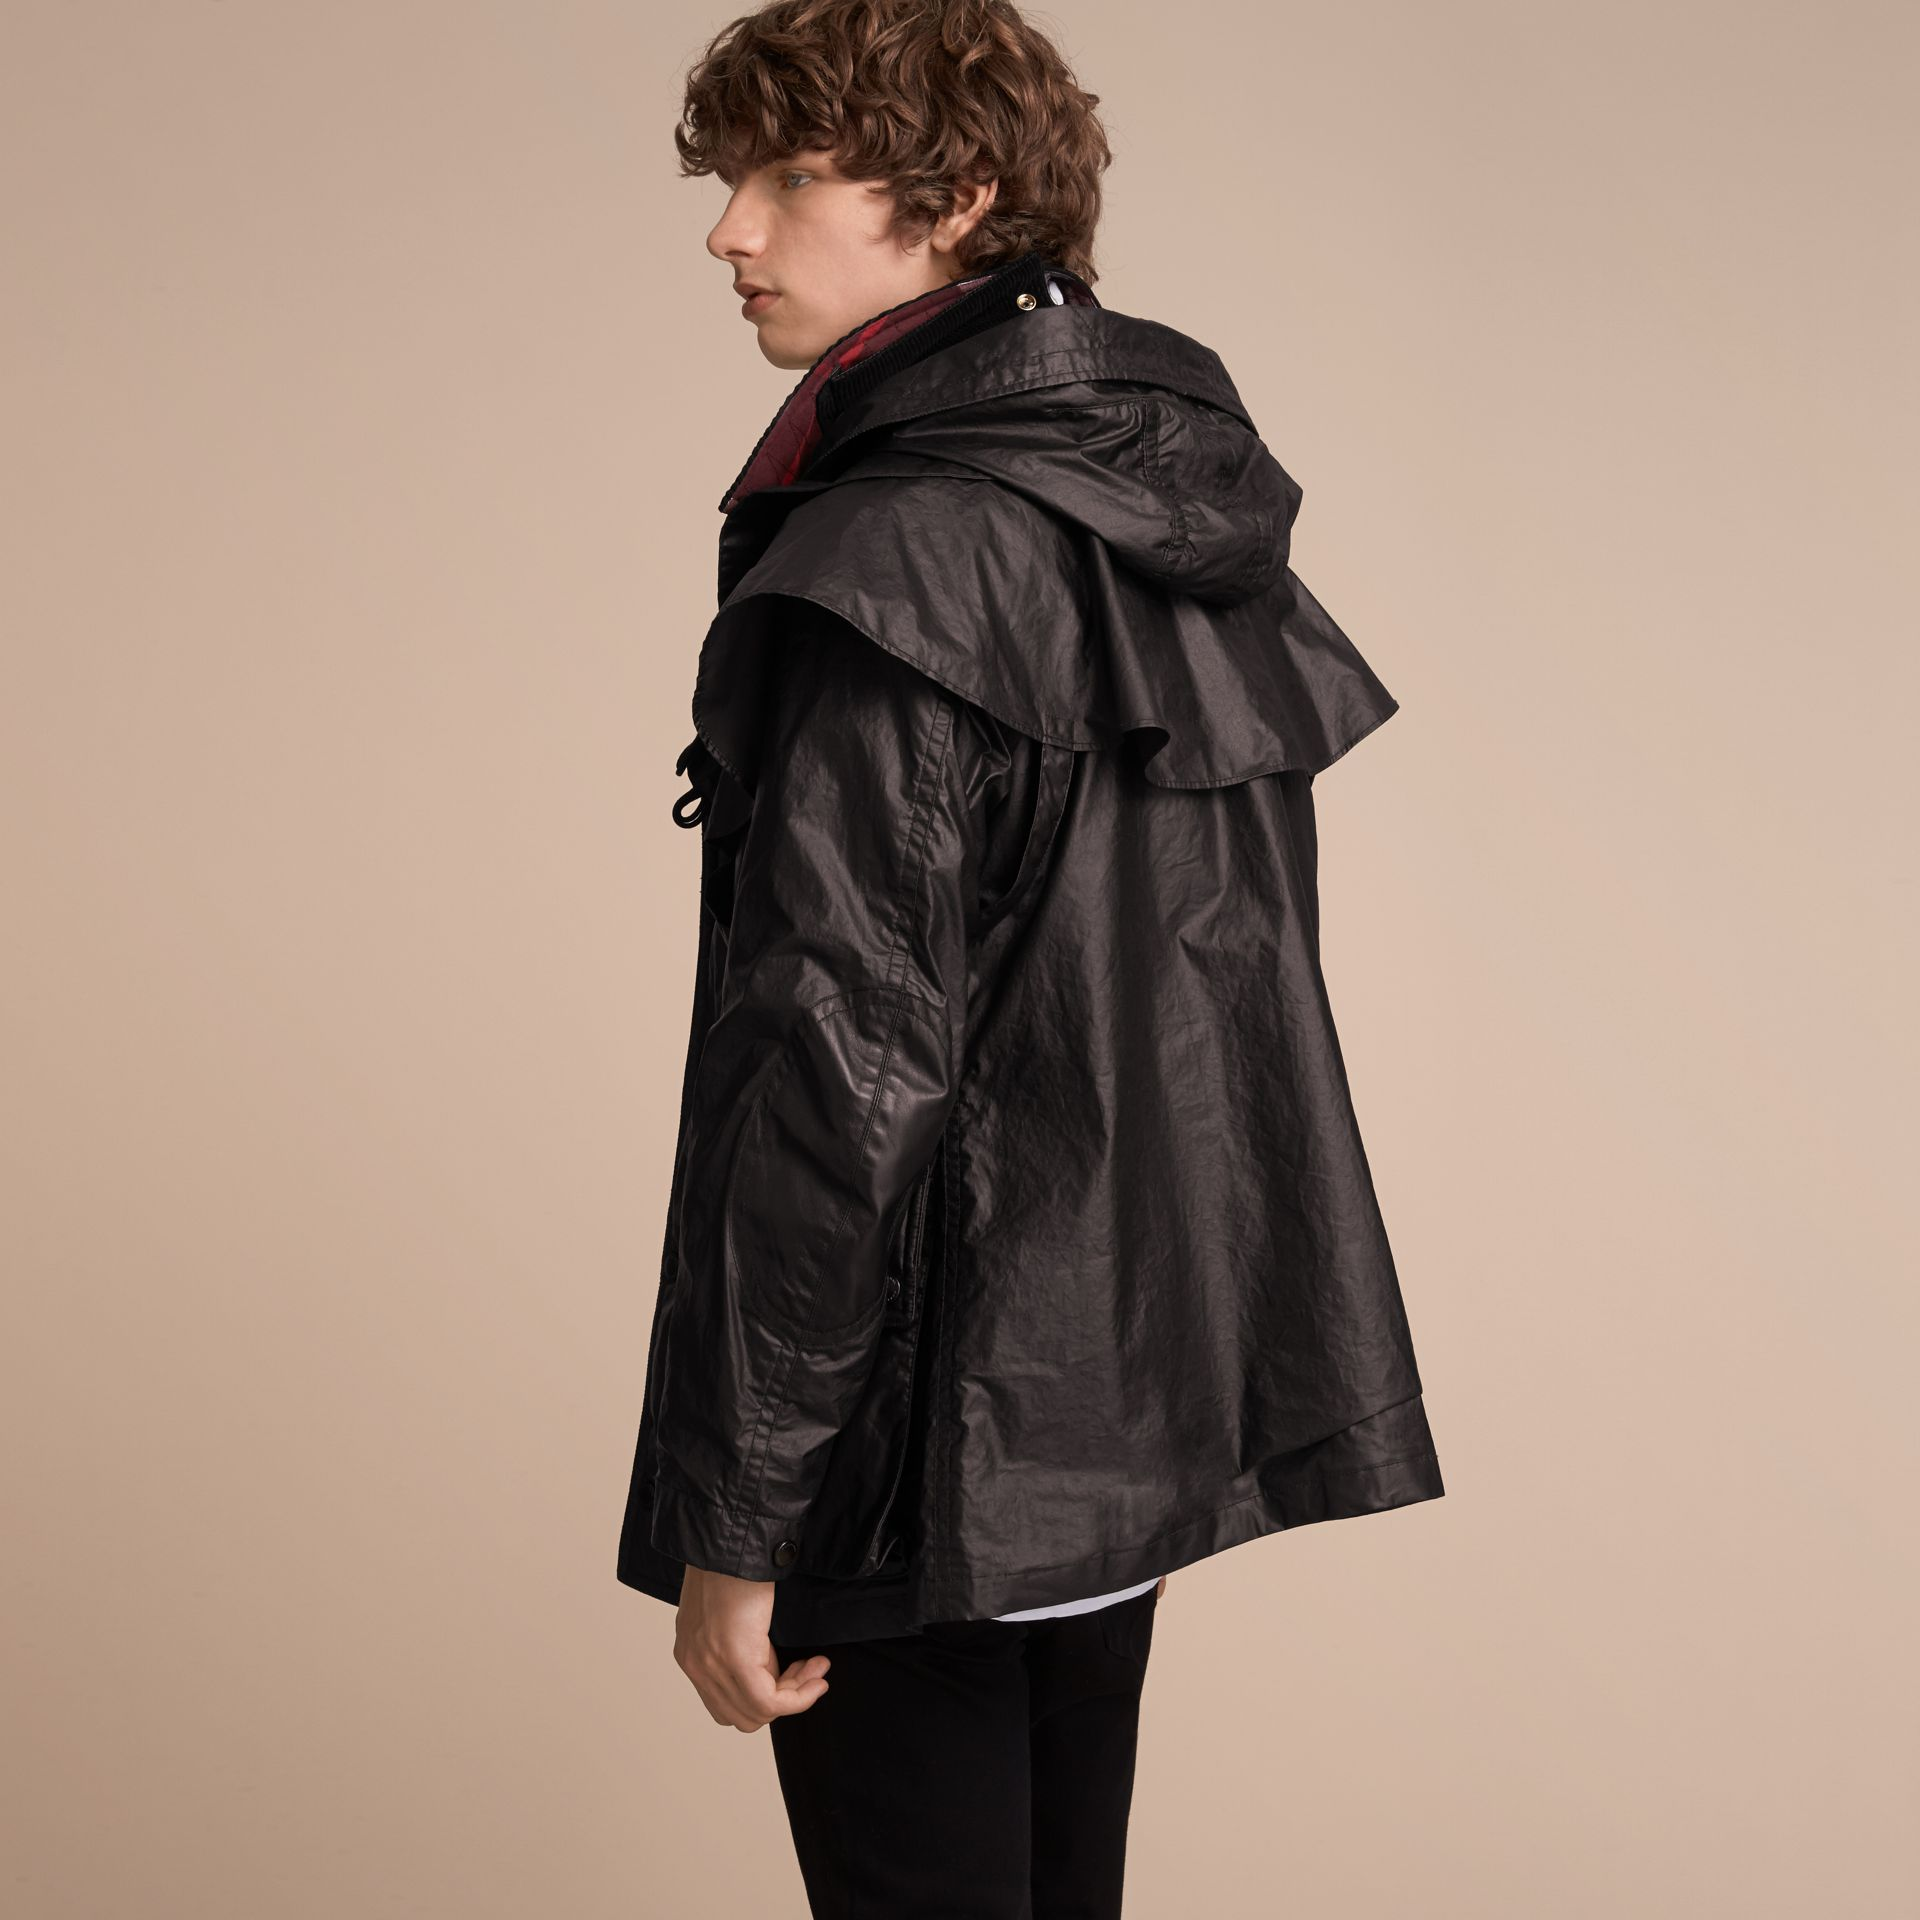 Cape Detail English-woven Waxed Cotton Field Jacket - Men | Burberry - gallery image 3